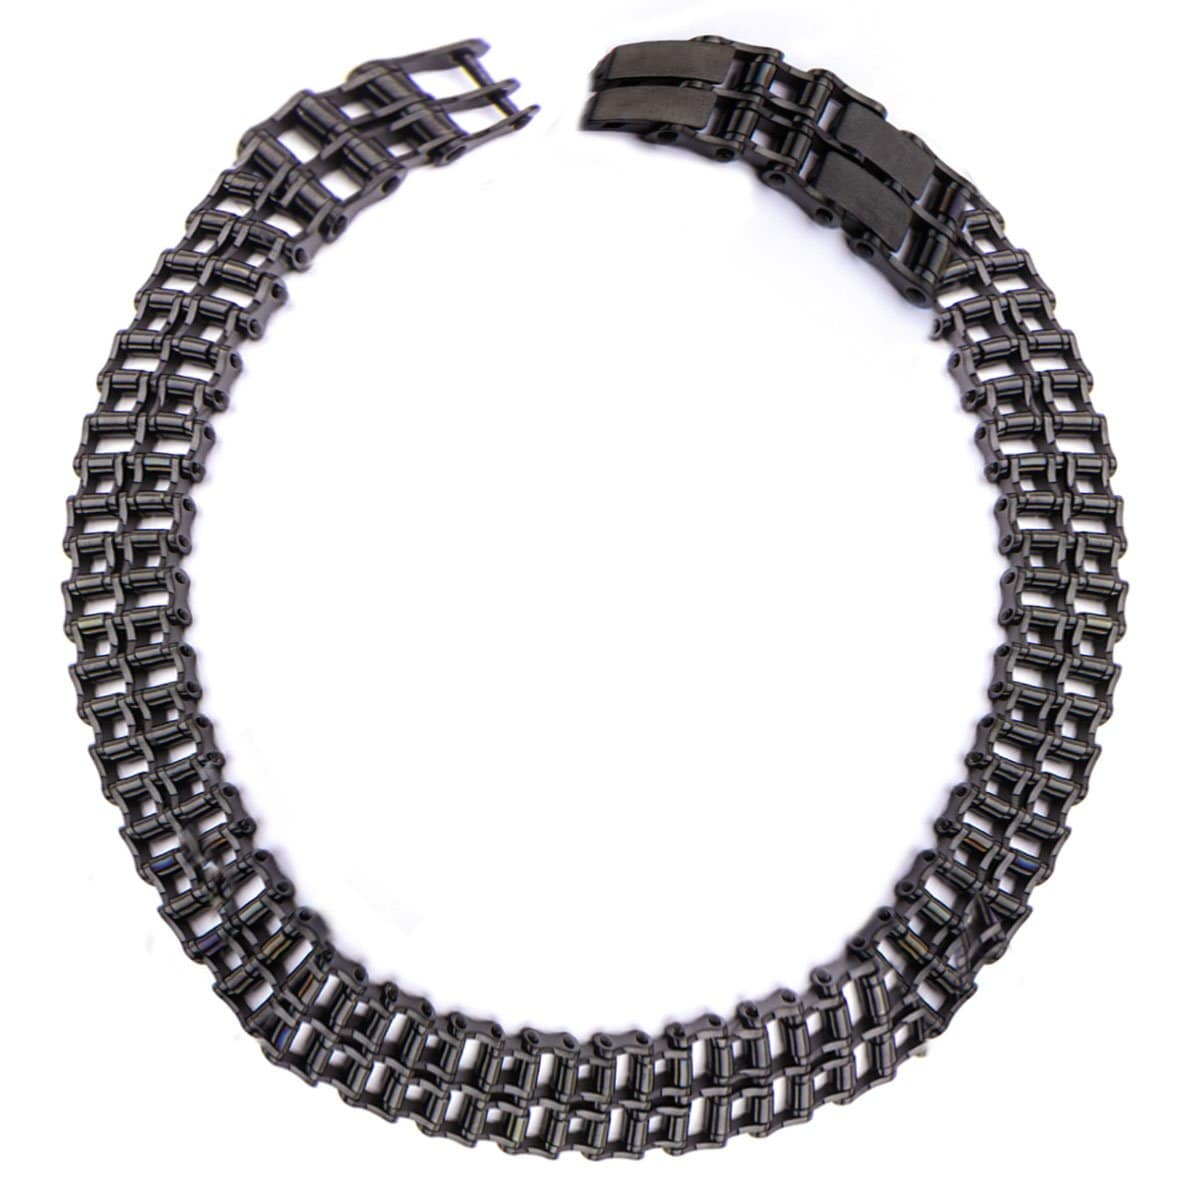 Black Stainless Steel Double Motorcycle Chain Adjustable Bracelet - Inox Jewelry India